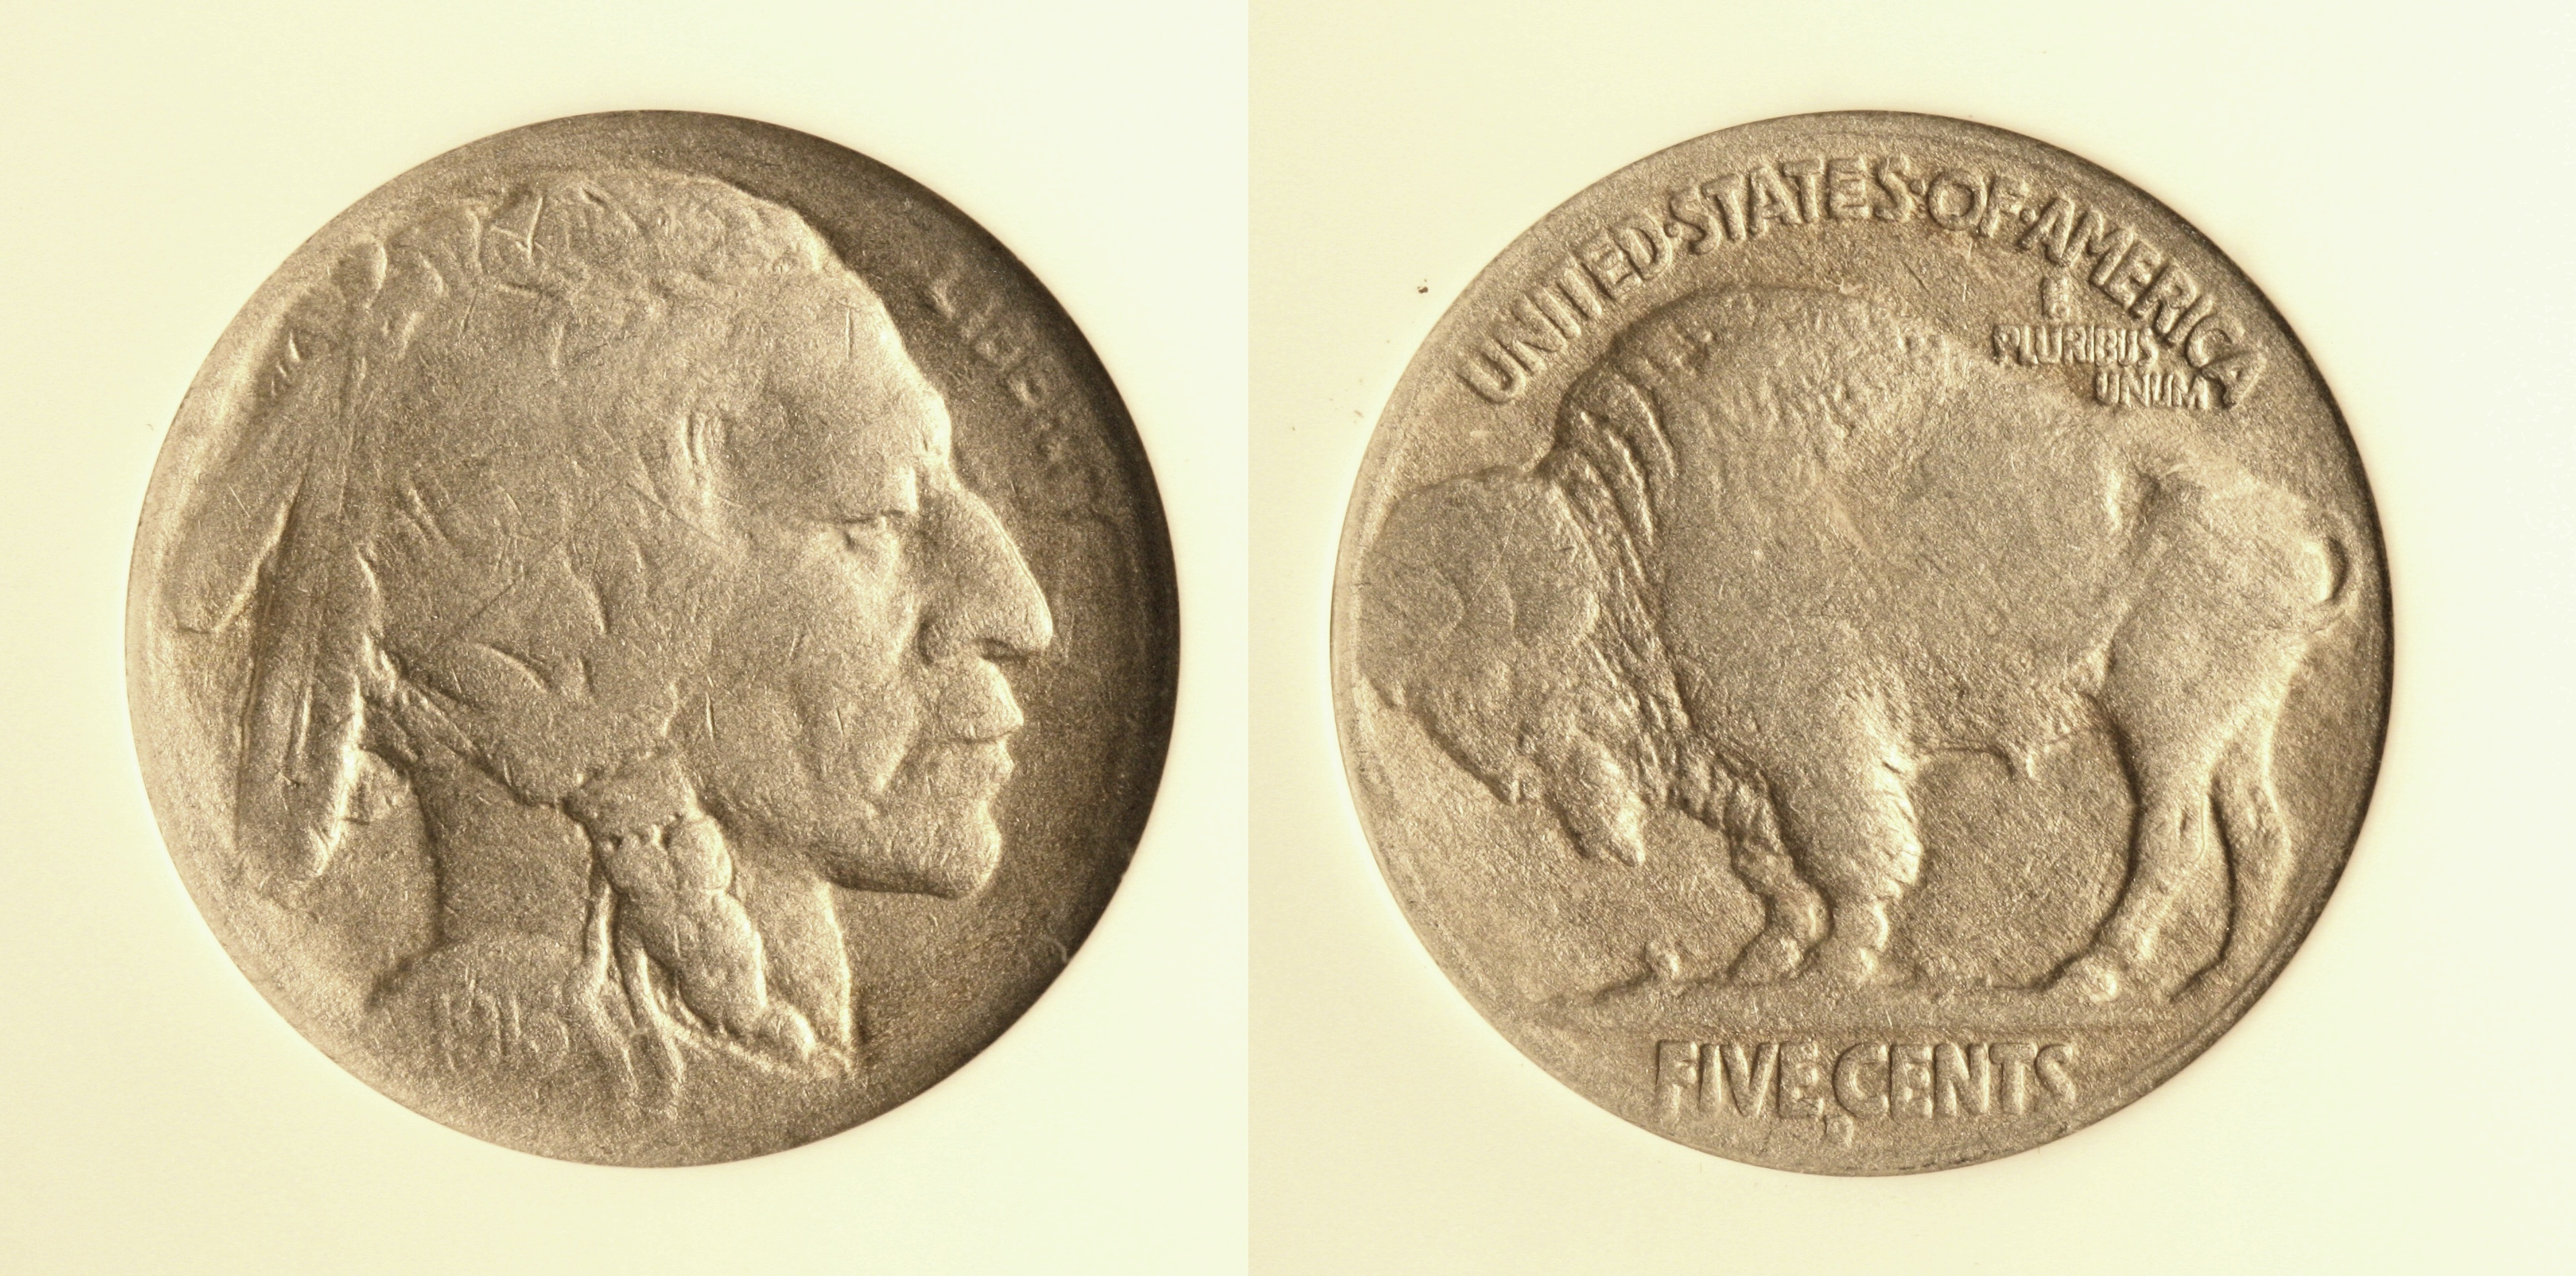 1913-D Type 2 Buffalo Nickel PCI F-12 Chemically Altered camera